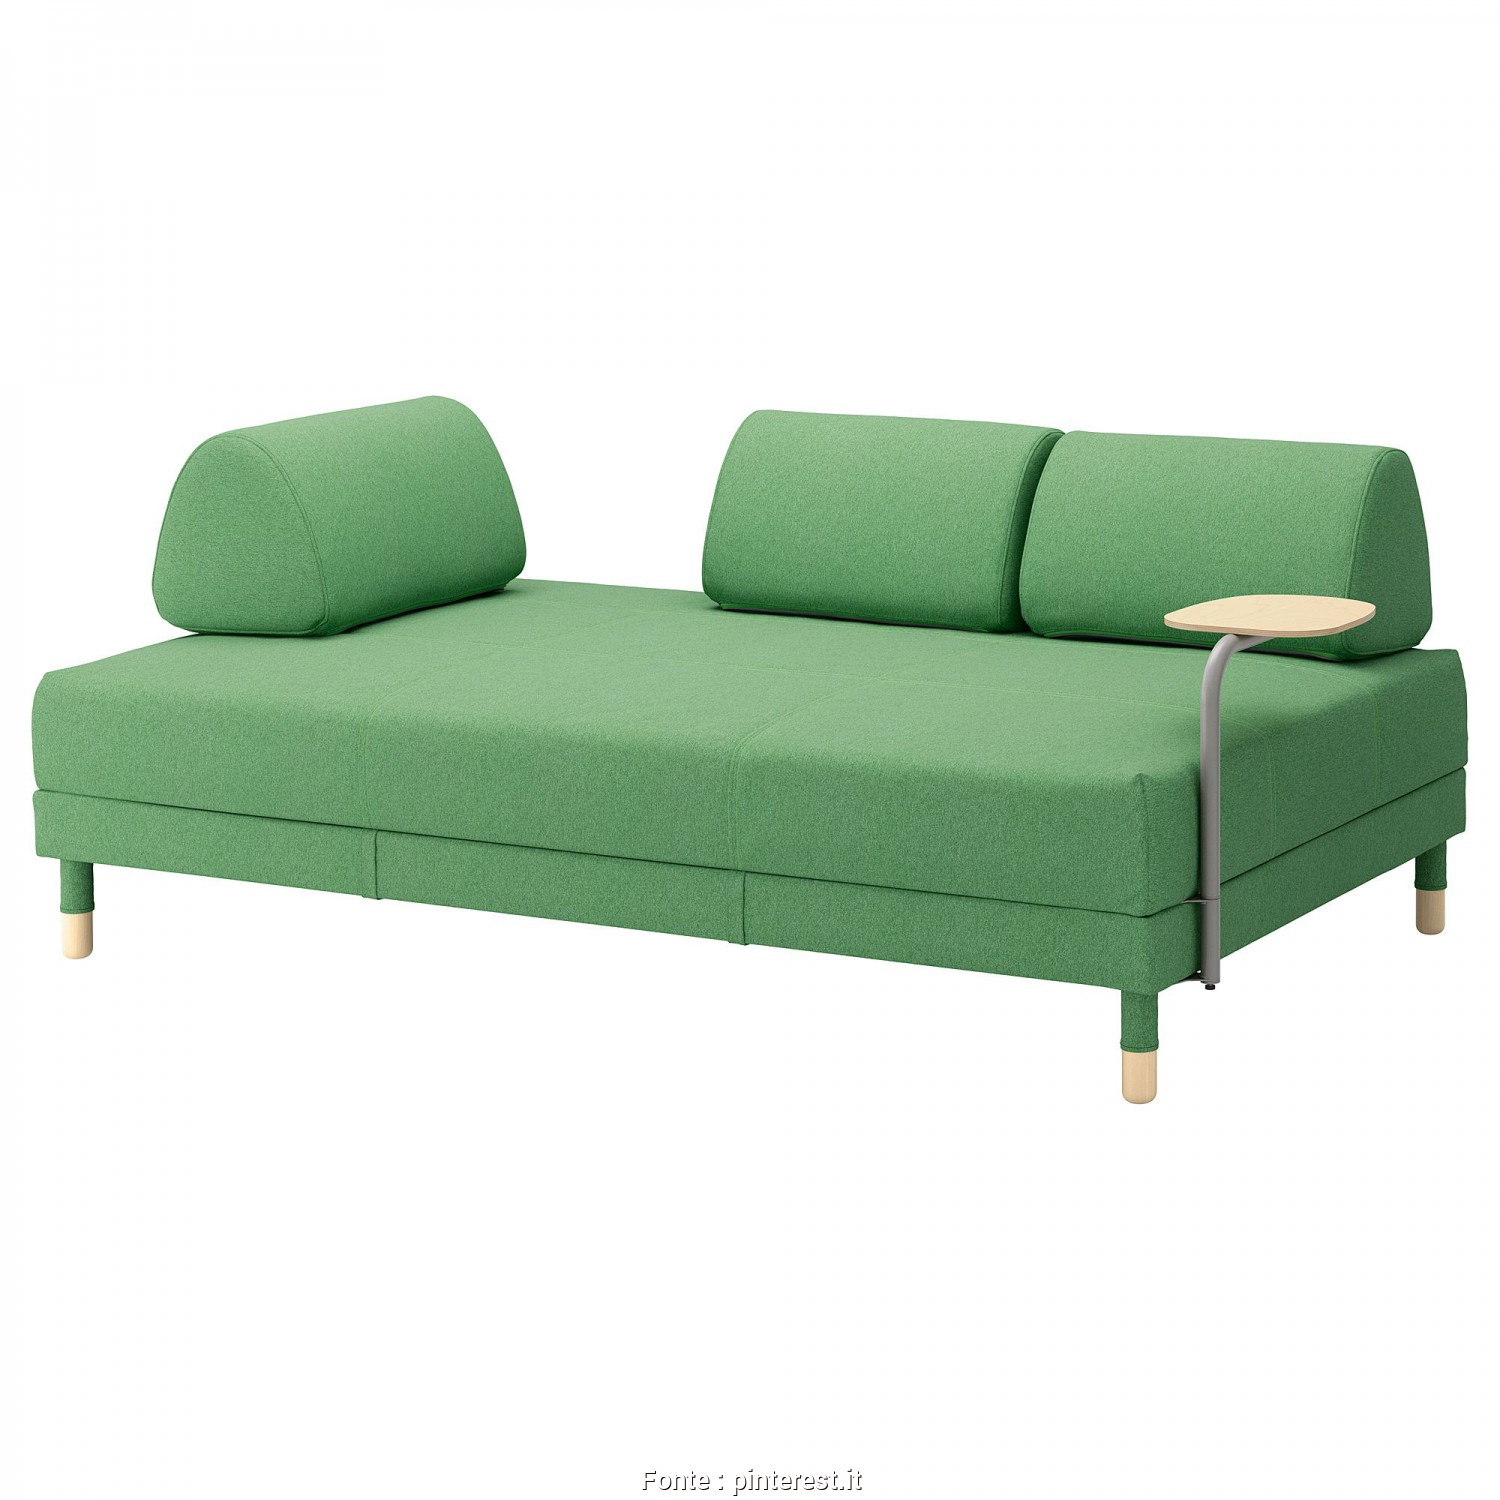 Divano Letto Ikea Flottebo, Maestoso IKEA, FLOTTEBO Sleeper Sofa With Side Table Lysed Green In 2019, Products, Pinterest, Divano Letto, Divano, Ikea